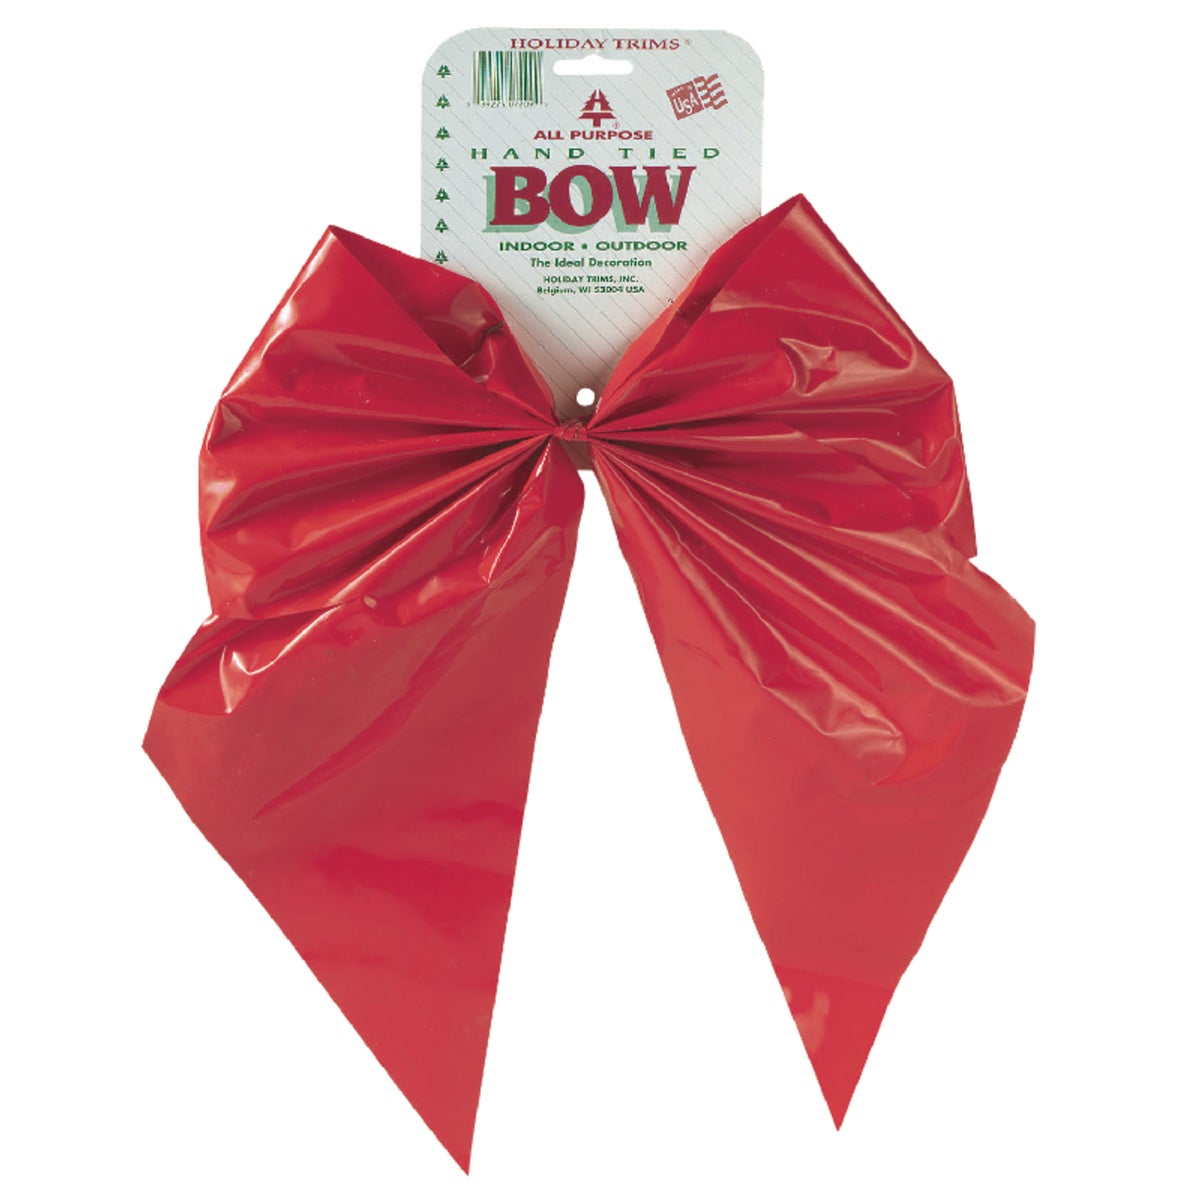 Holiday Trim 11X16 RED PLASIC BOW 7209